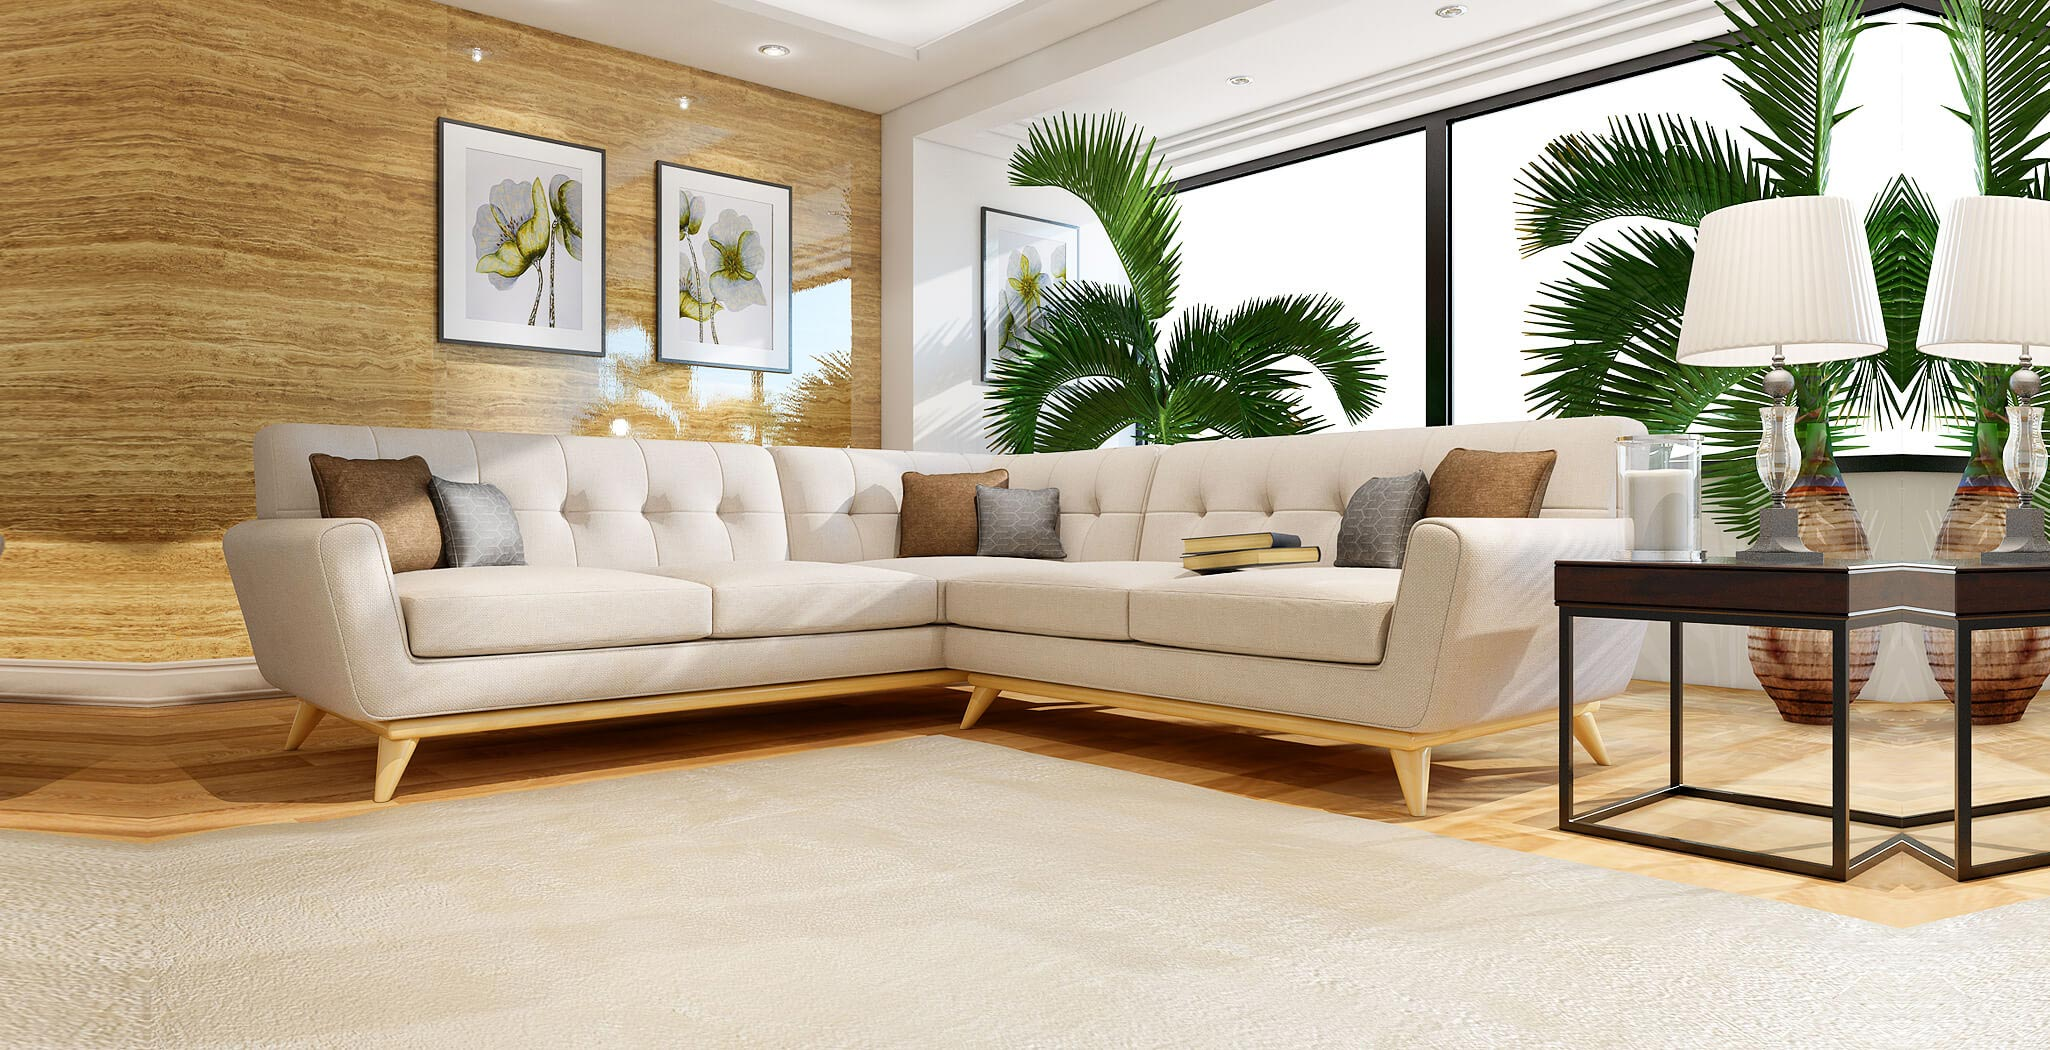 brussels sectional furniture gallery 1